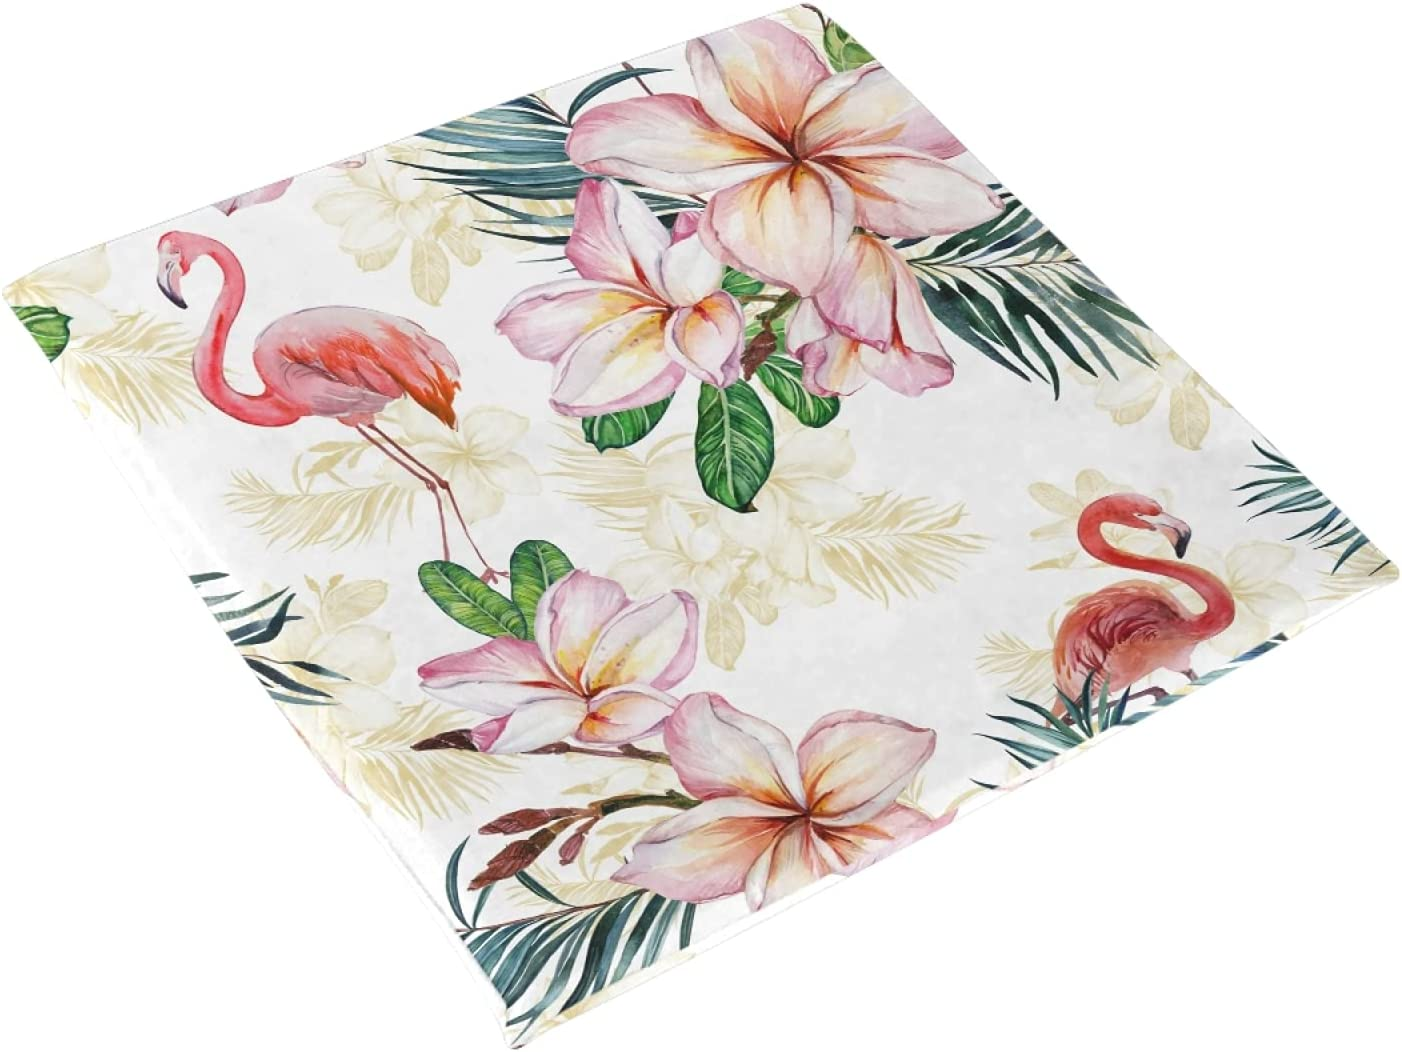 xigua Seat Cushion Beautiful Colorful Cha and Flamingos Flowers Very popular Many popular brands